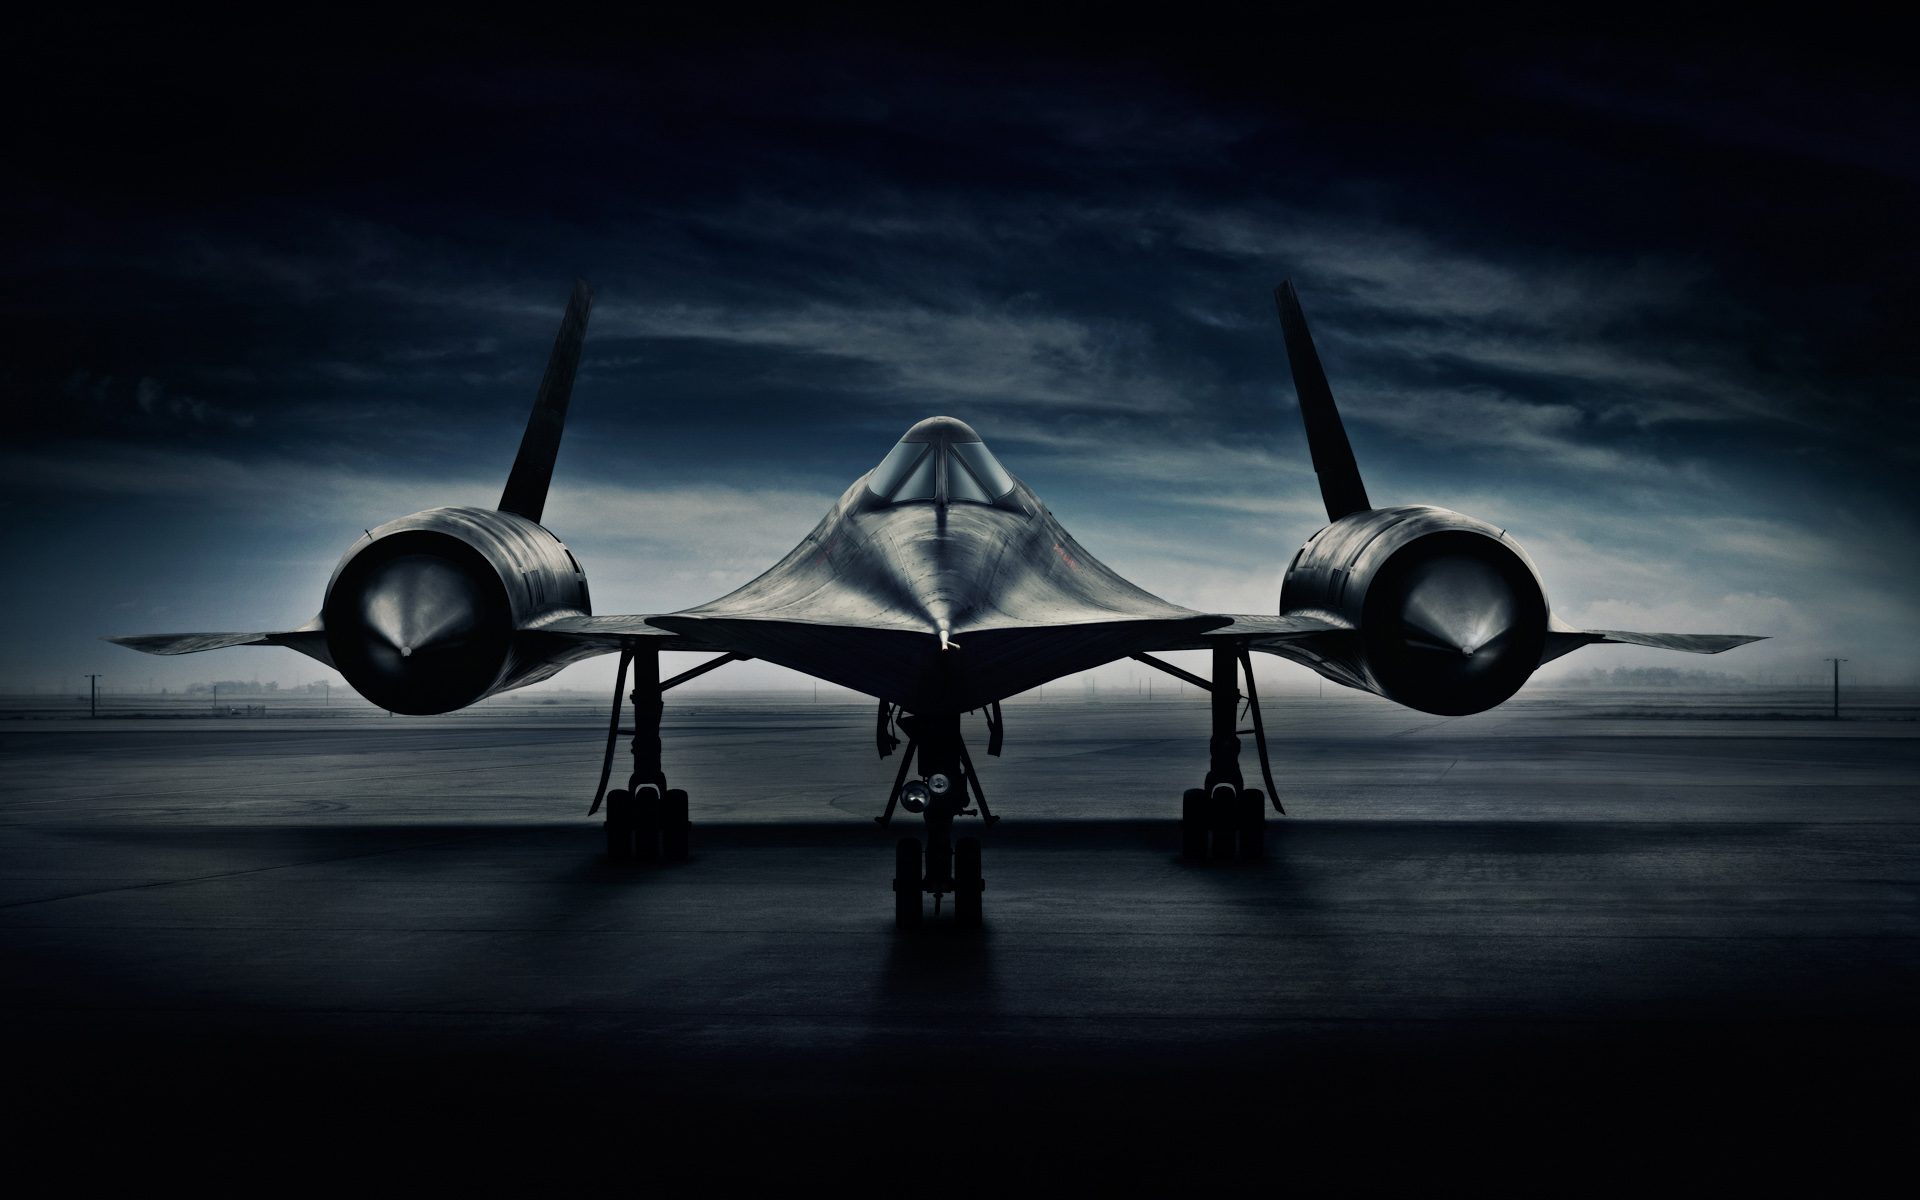 Commercial Aviation Photographer SR71